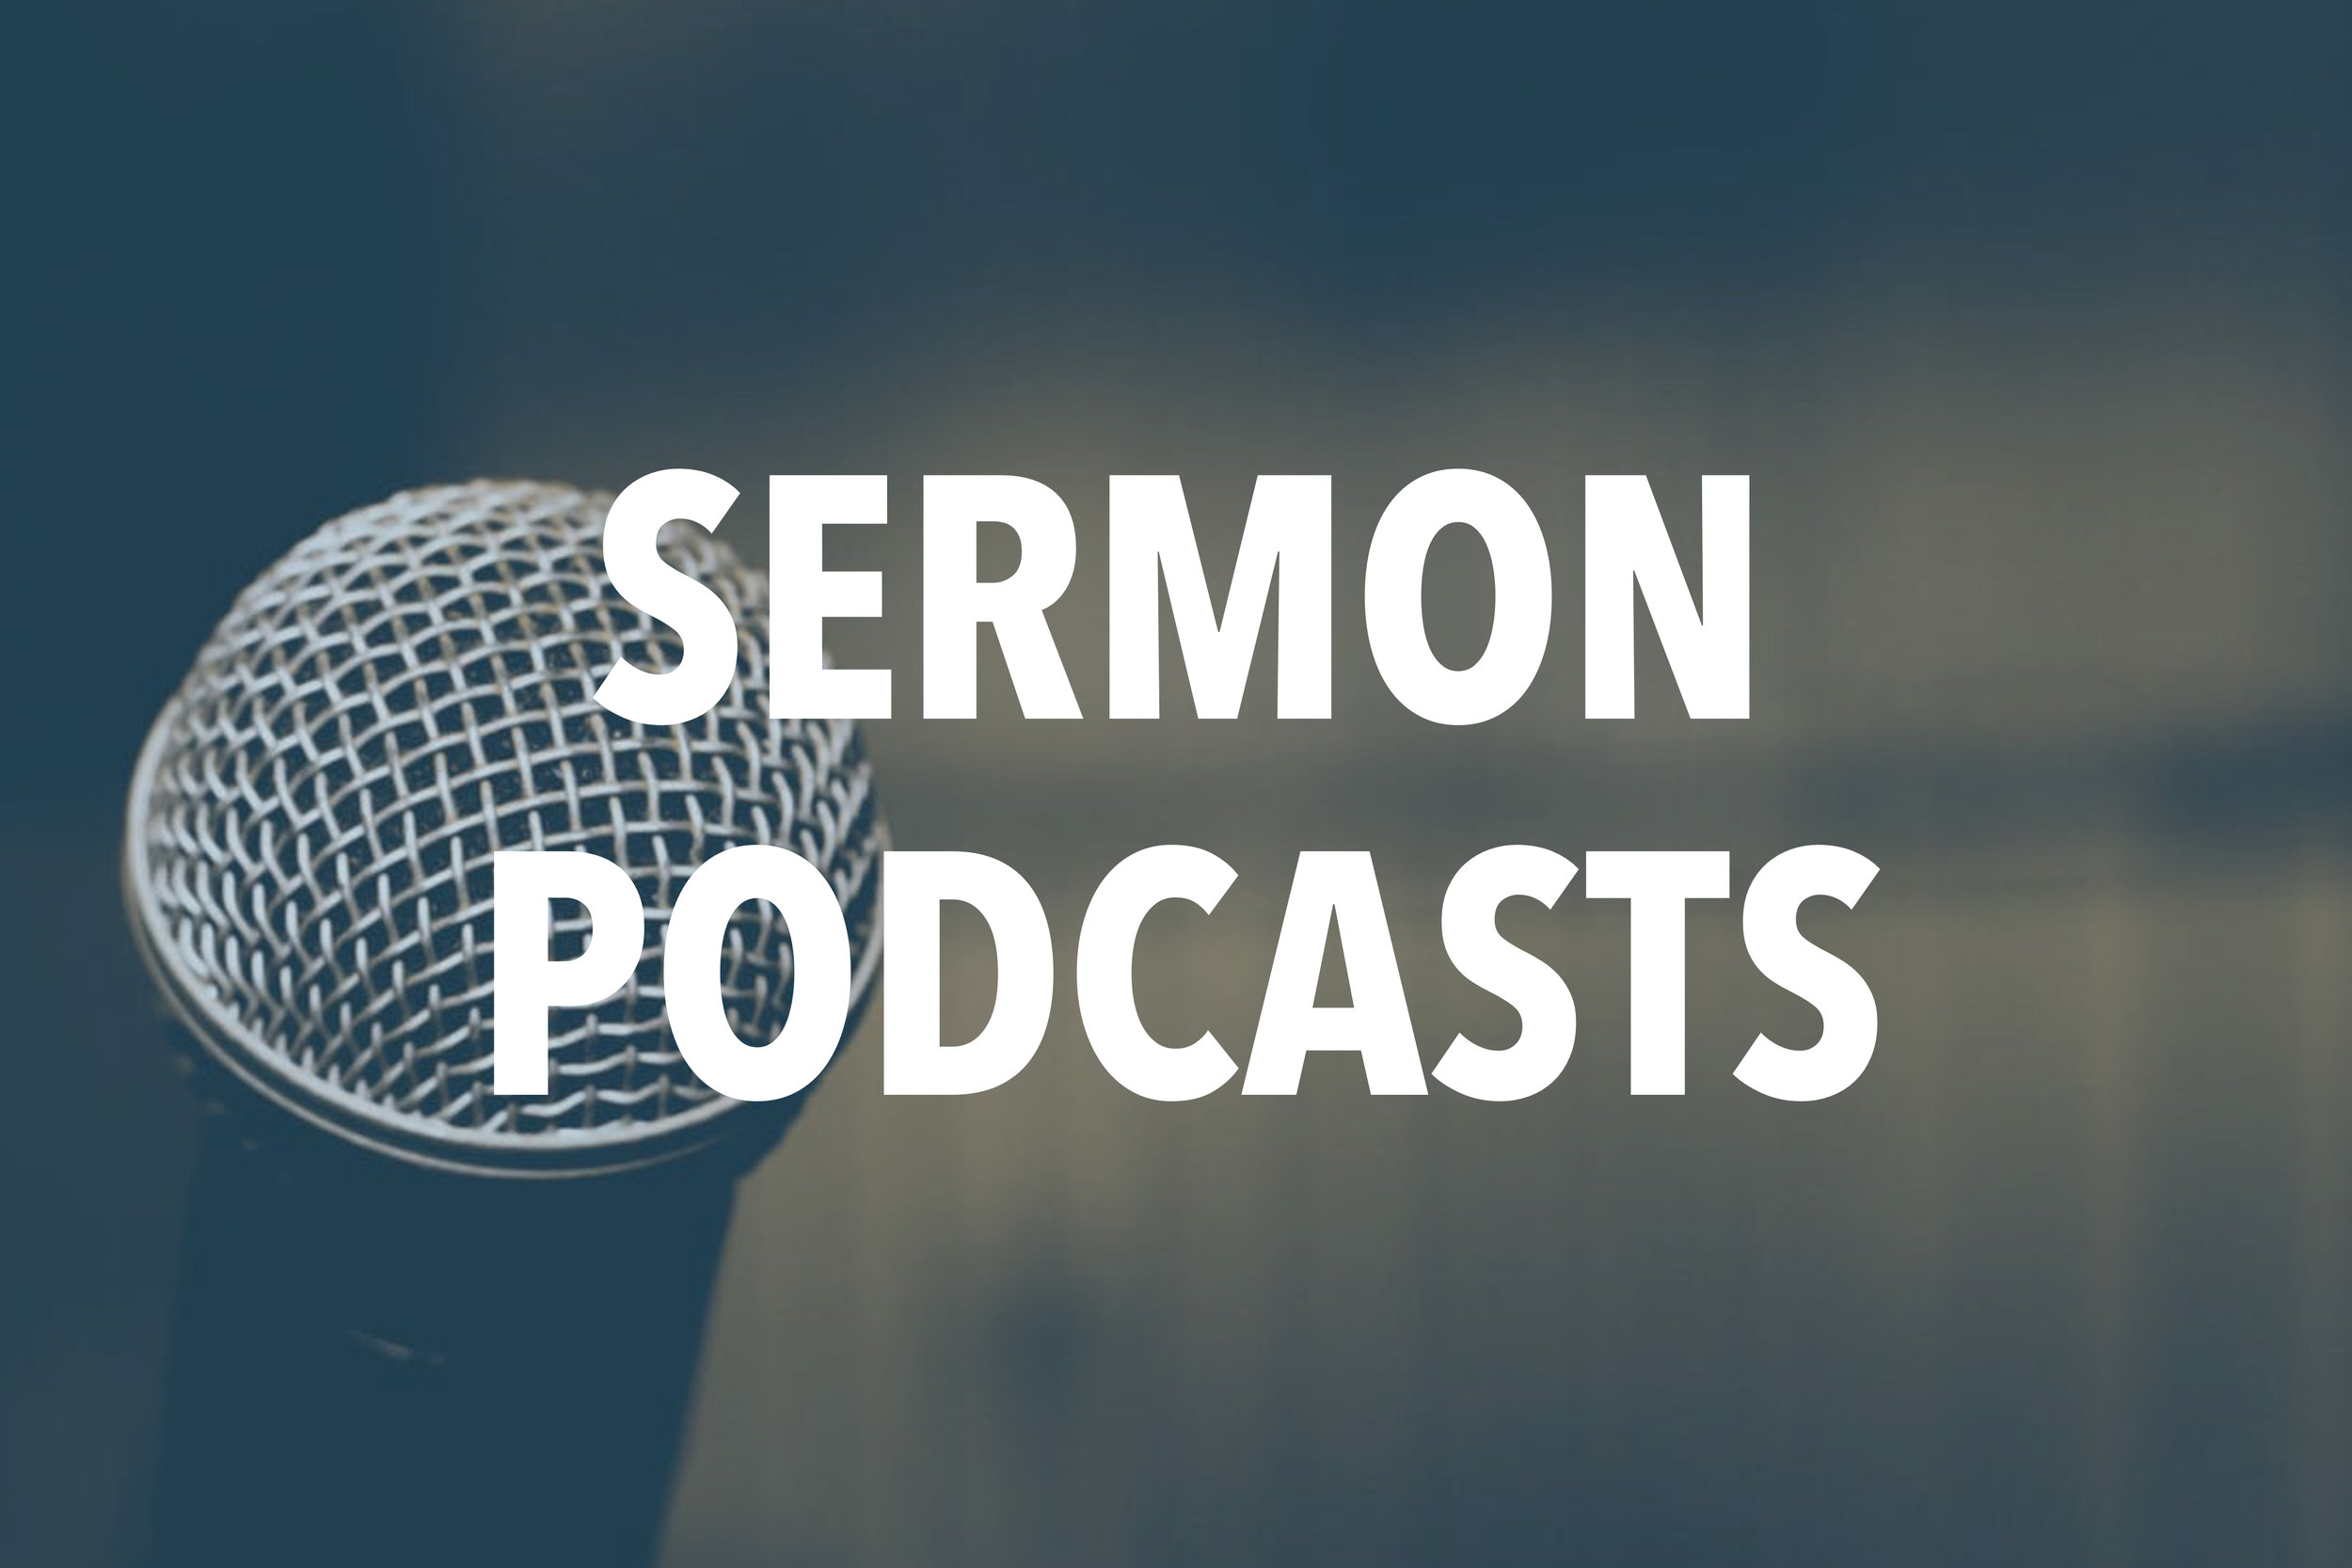 SERMON PODCAST.jpg